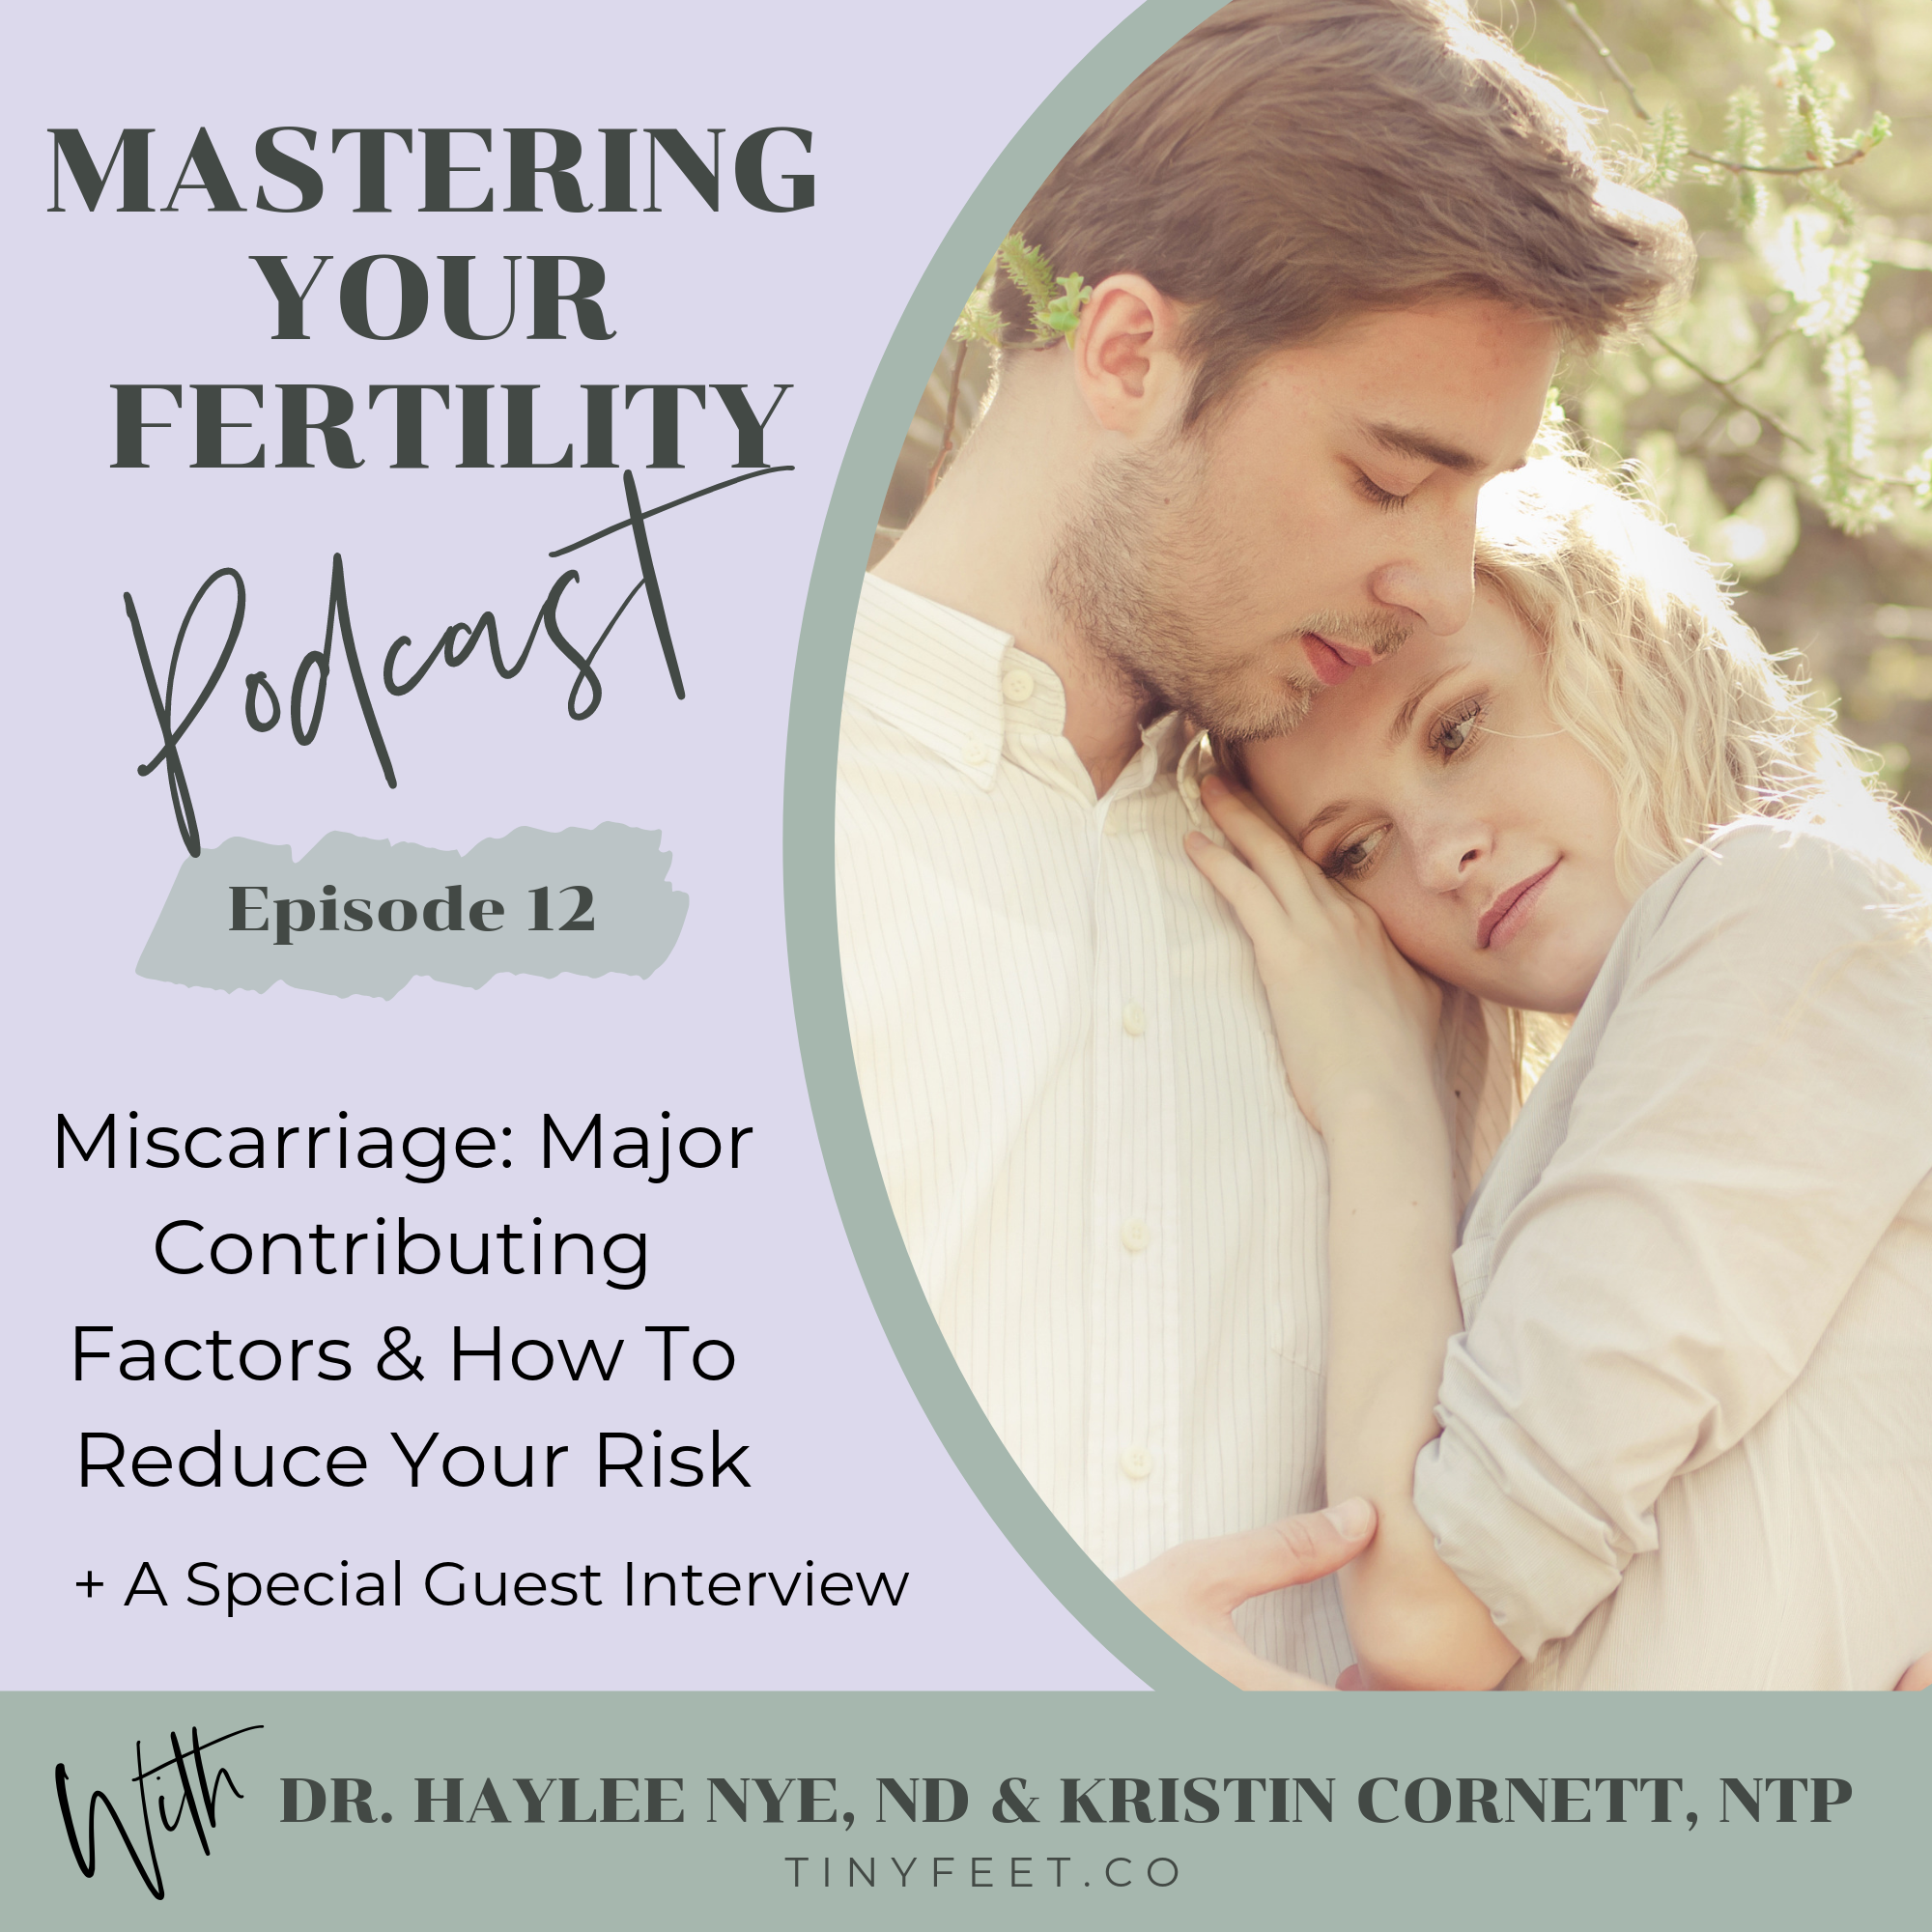 Mastering Your Fertility Ep 12 Miscarriage Major Contributing Factors and How To Reduce Your Risk